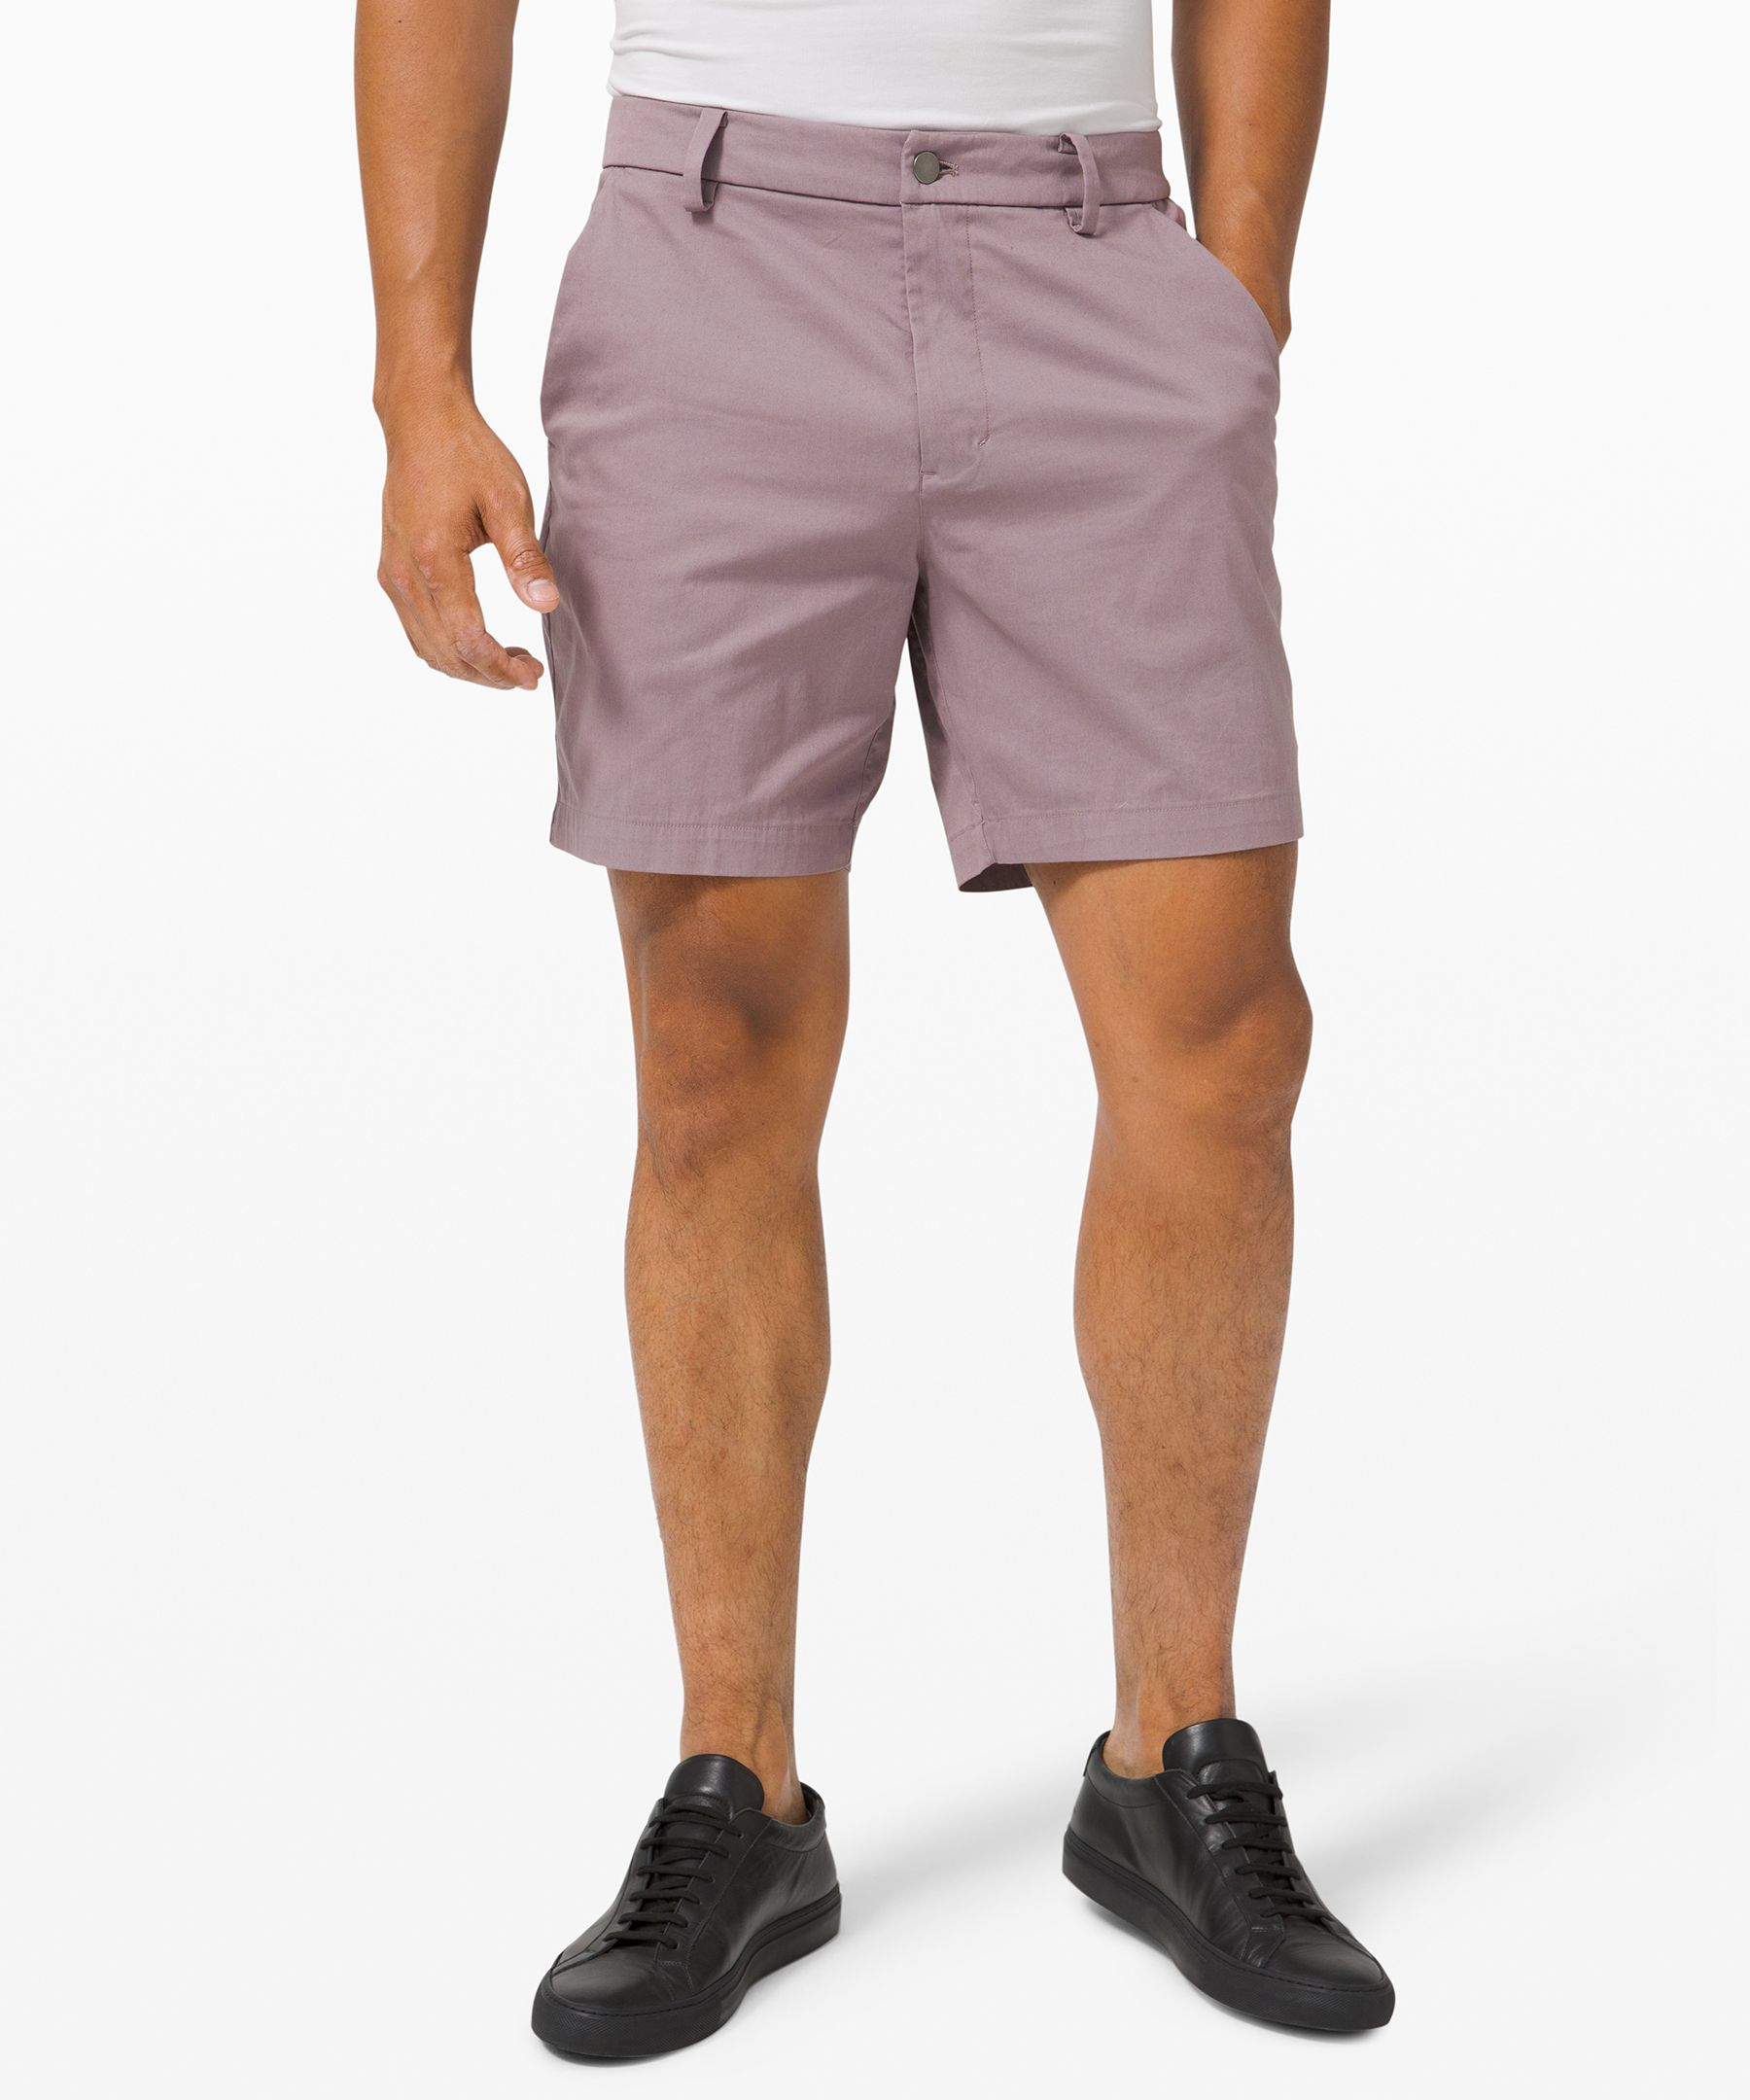 Inspired by chinos, these  classic-fit shorts are made  for all-day comfort.